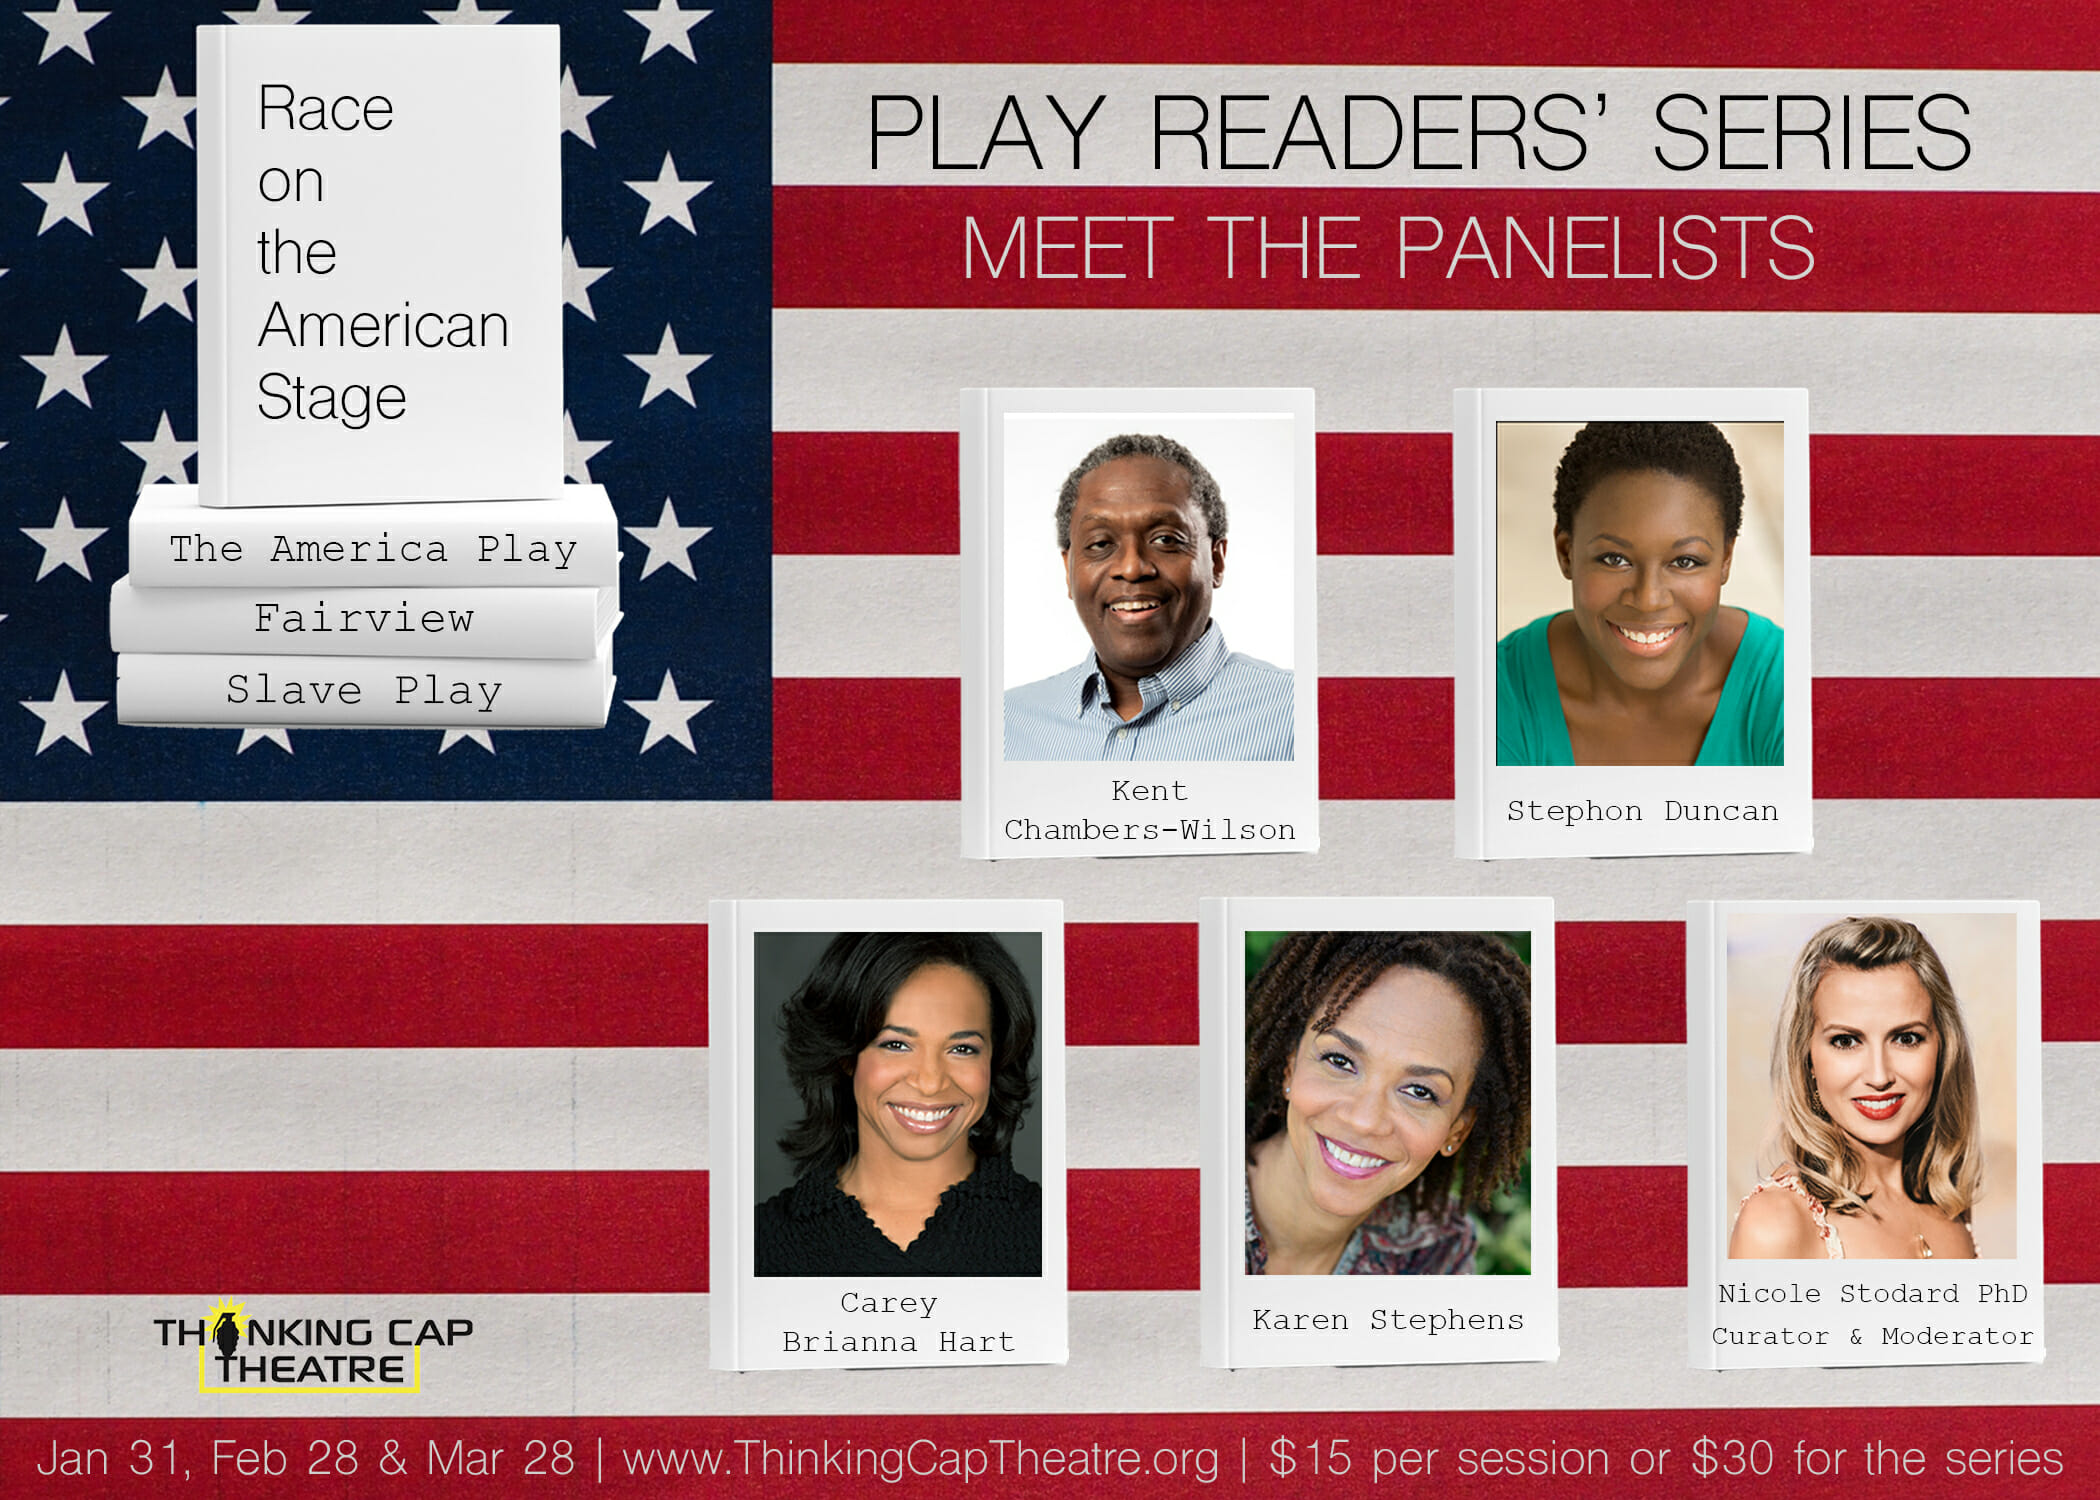 Thinking Cap Theatre: The Play Readers' Series: Race on the American Stage